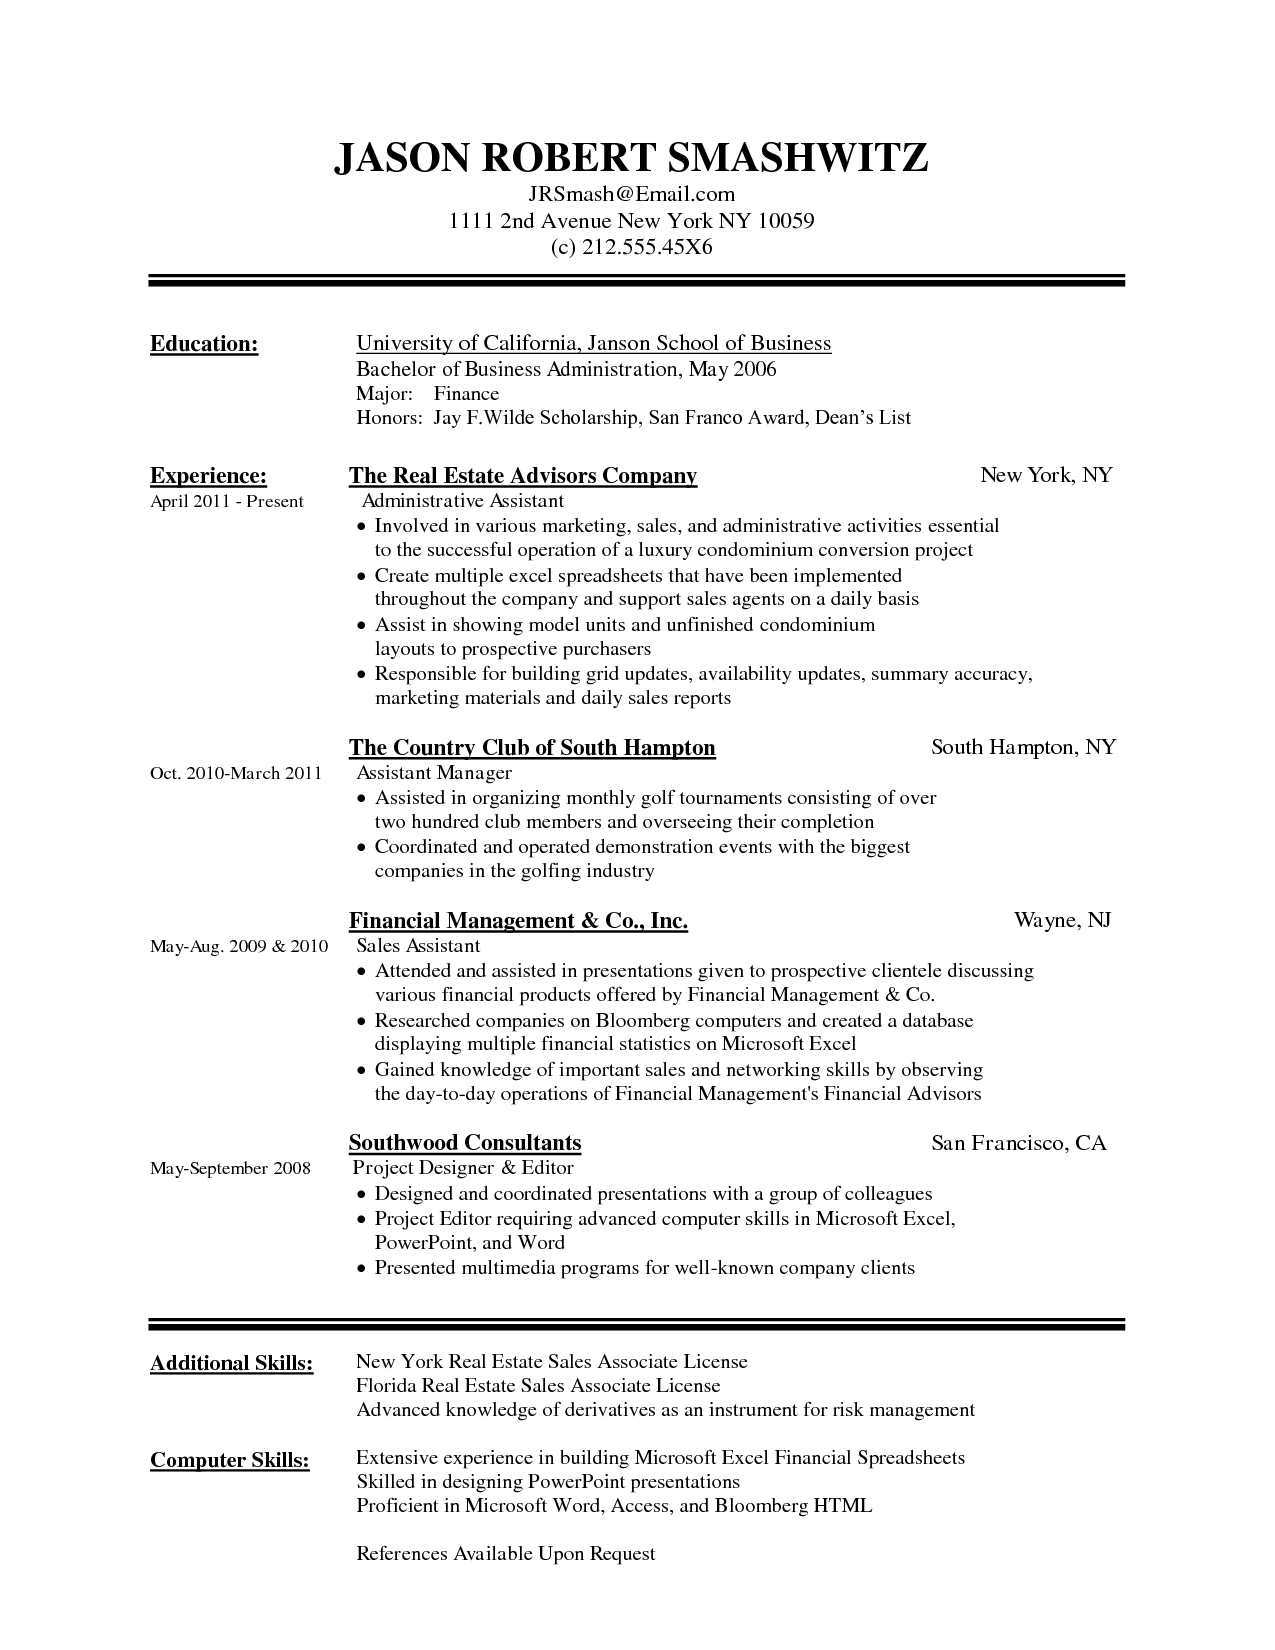 High School Resume Template Microsoft Word | Resume Templates and ...